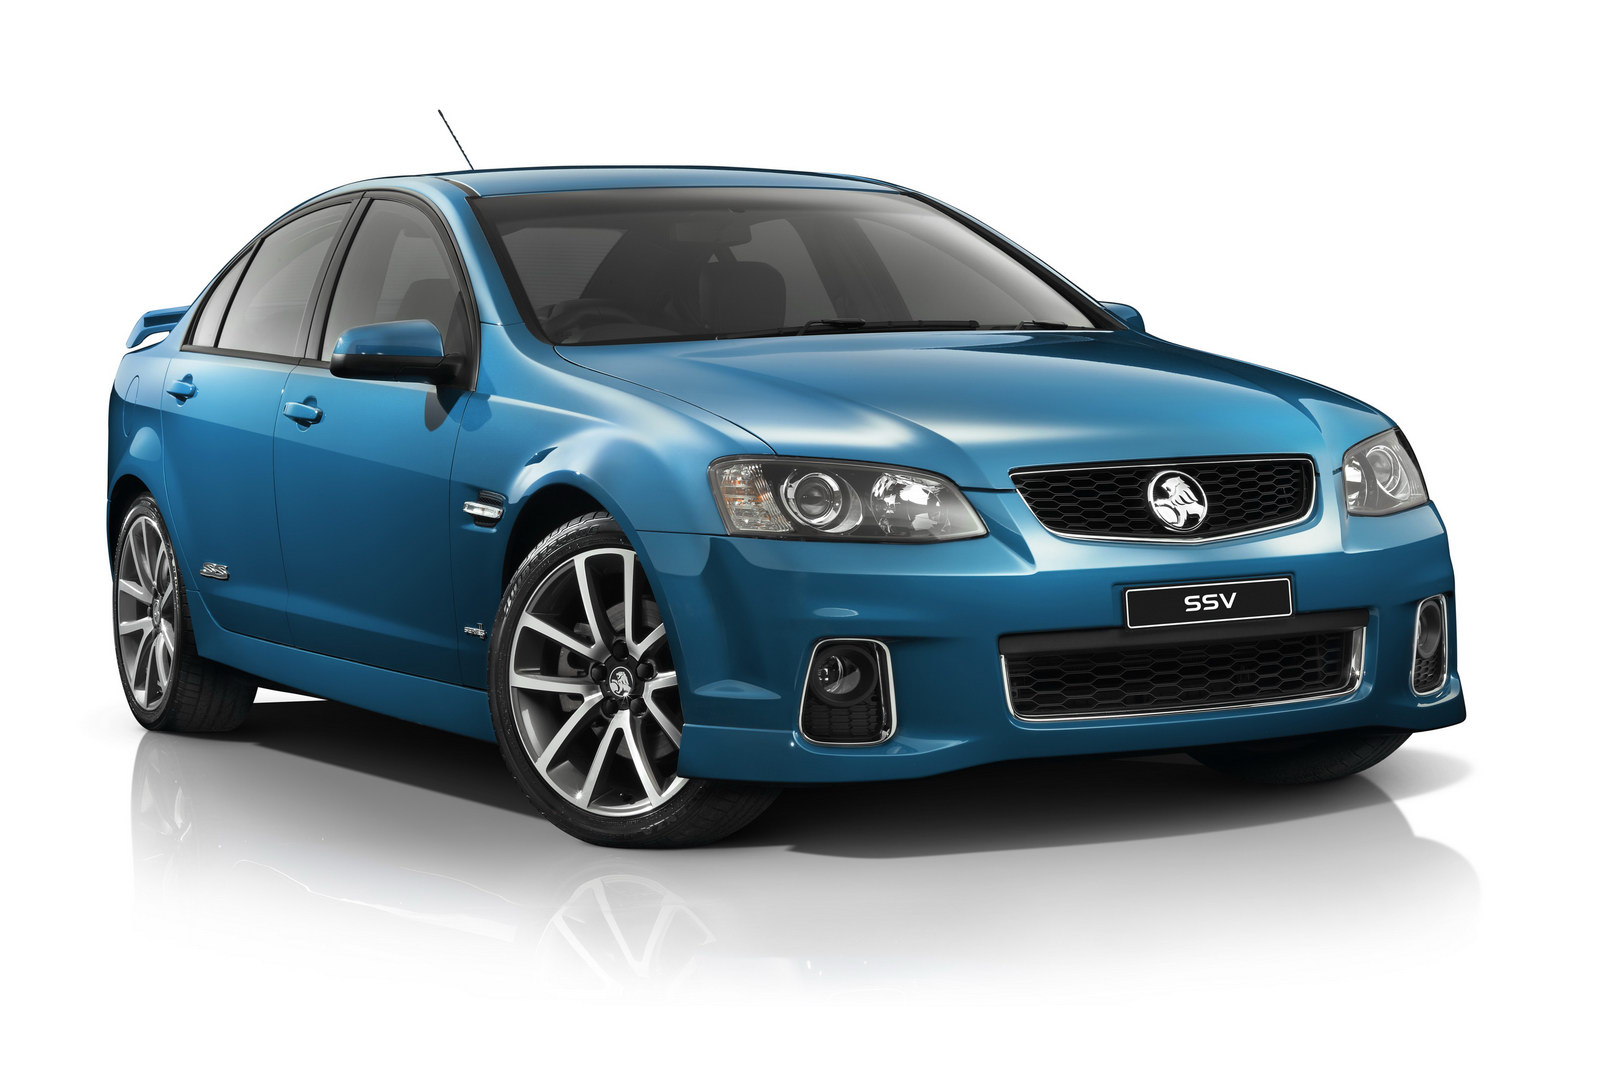 2012 Holden Commodore Gets Cosmetically Enhanced